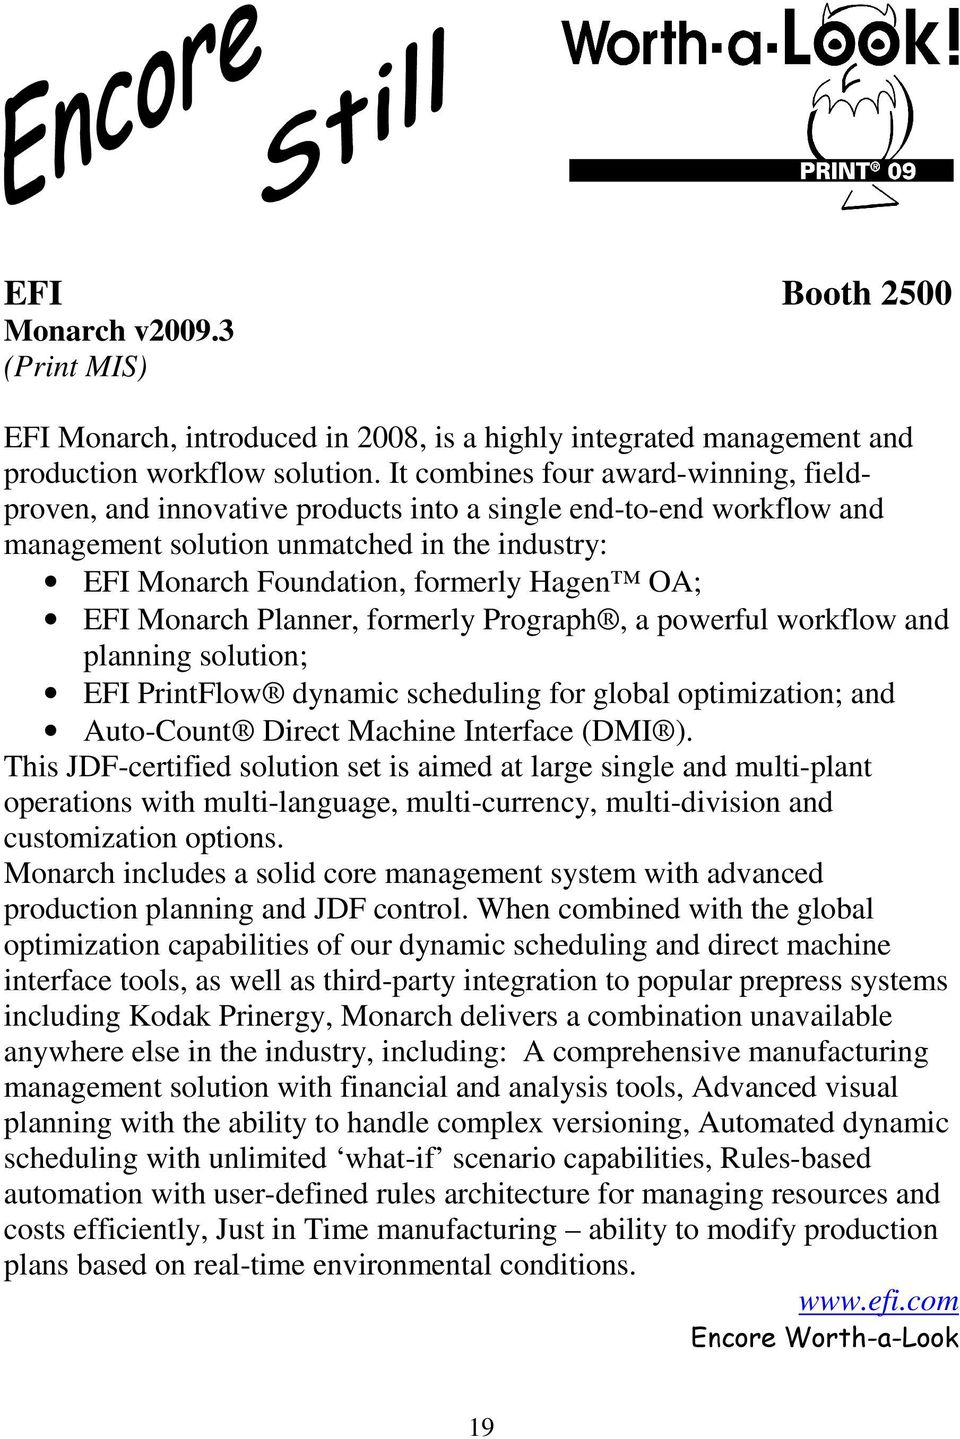 EFI Monarch Planner, formerly Prograph, a powerful workflow and planning solution; EFI PrintFlow dynamic scheduling for global optimization; and Auto-Count Direct Machine Interface (DMI ).